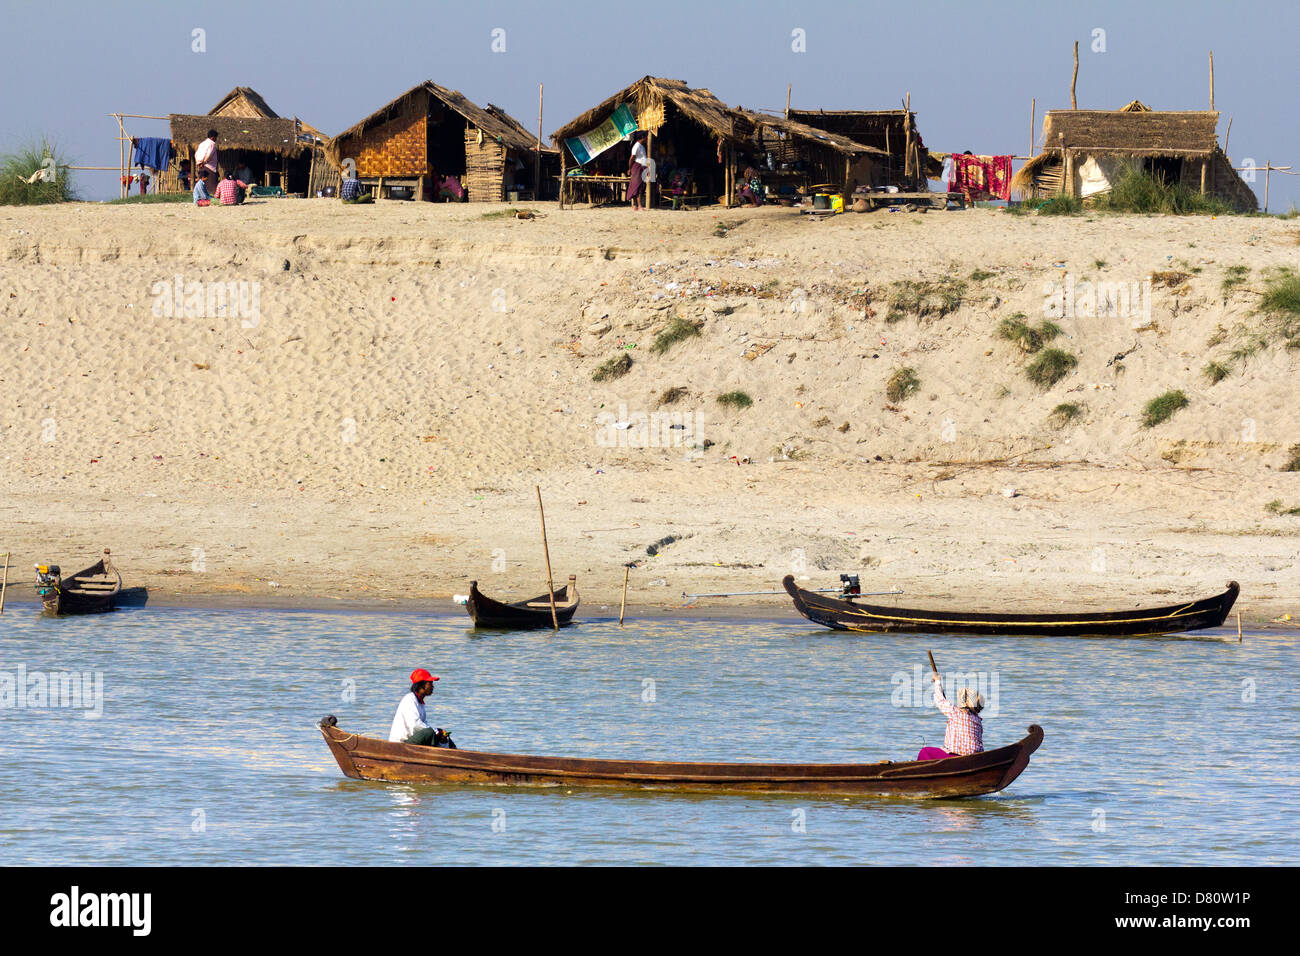 Village on the banks of the Irrawaddy close to Mandalay, Myanmar 2 - Stock Image